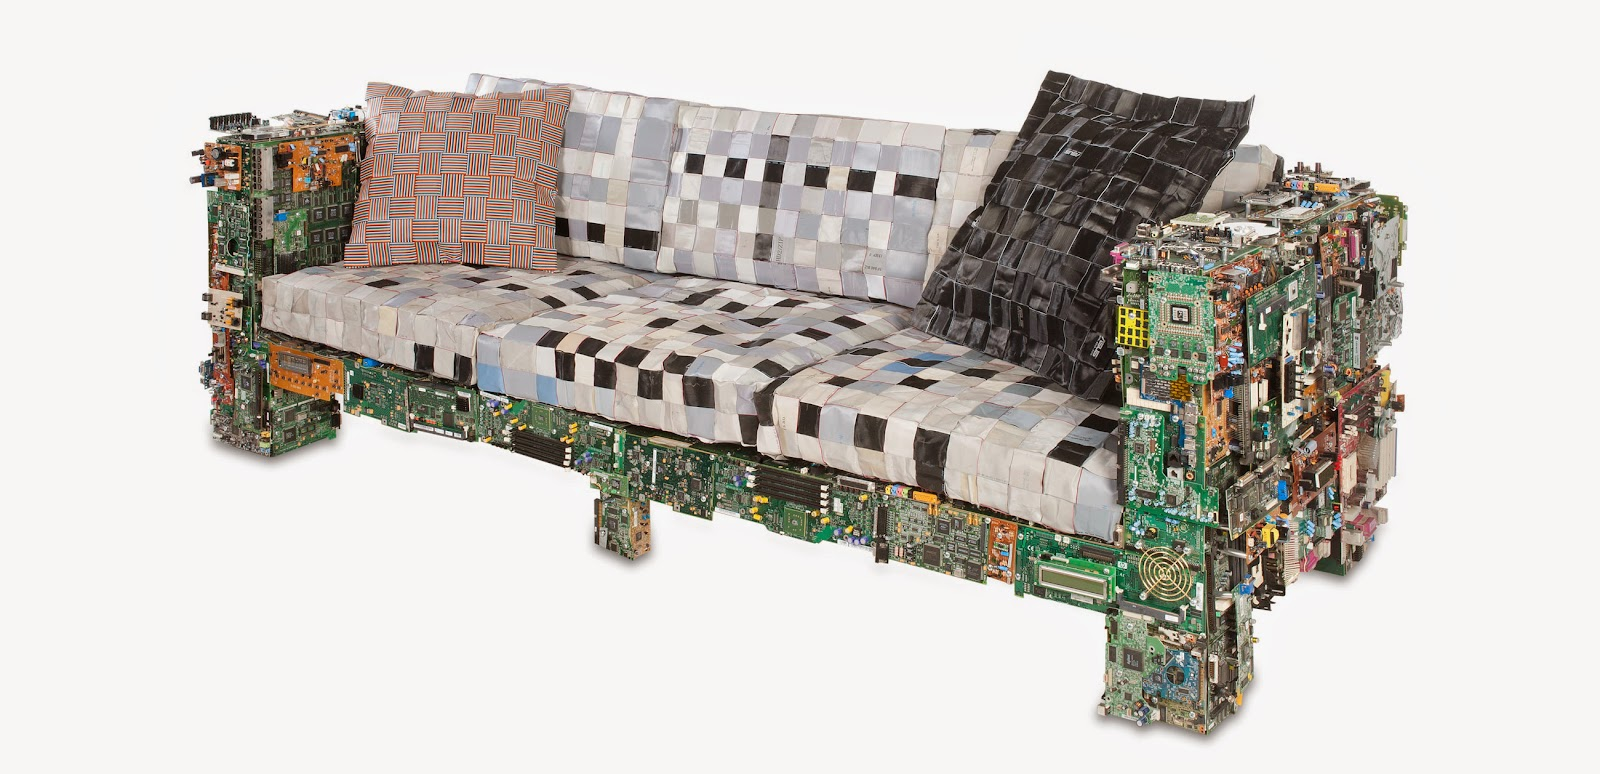 12-Binary-Sofa-Benjamin-Rollins-Caldwell-BRC-Designs-Recycled-Furniture-Sculptor-www-designstack-co